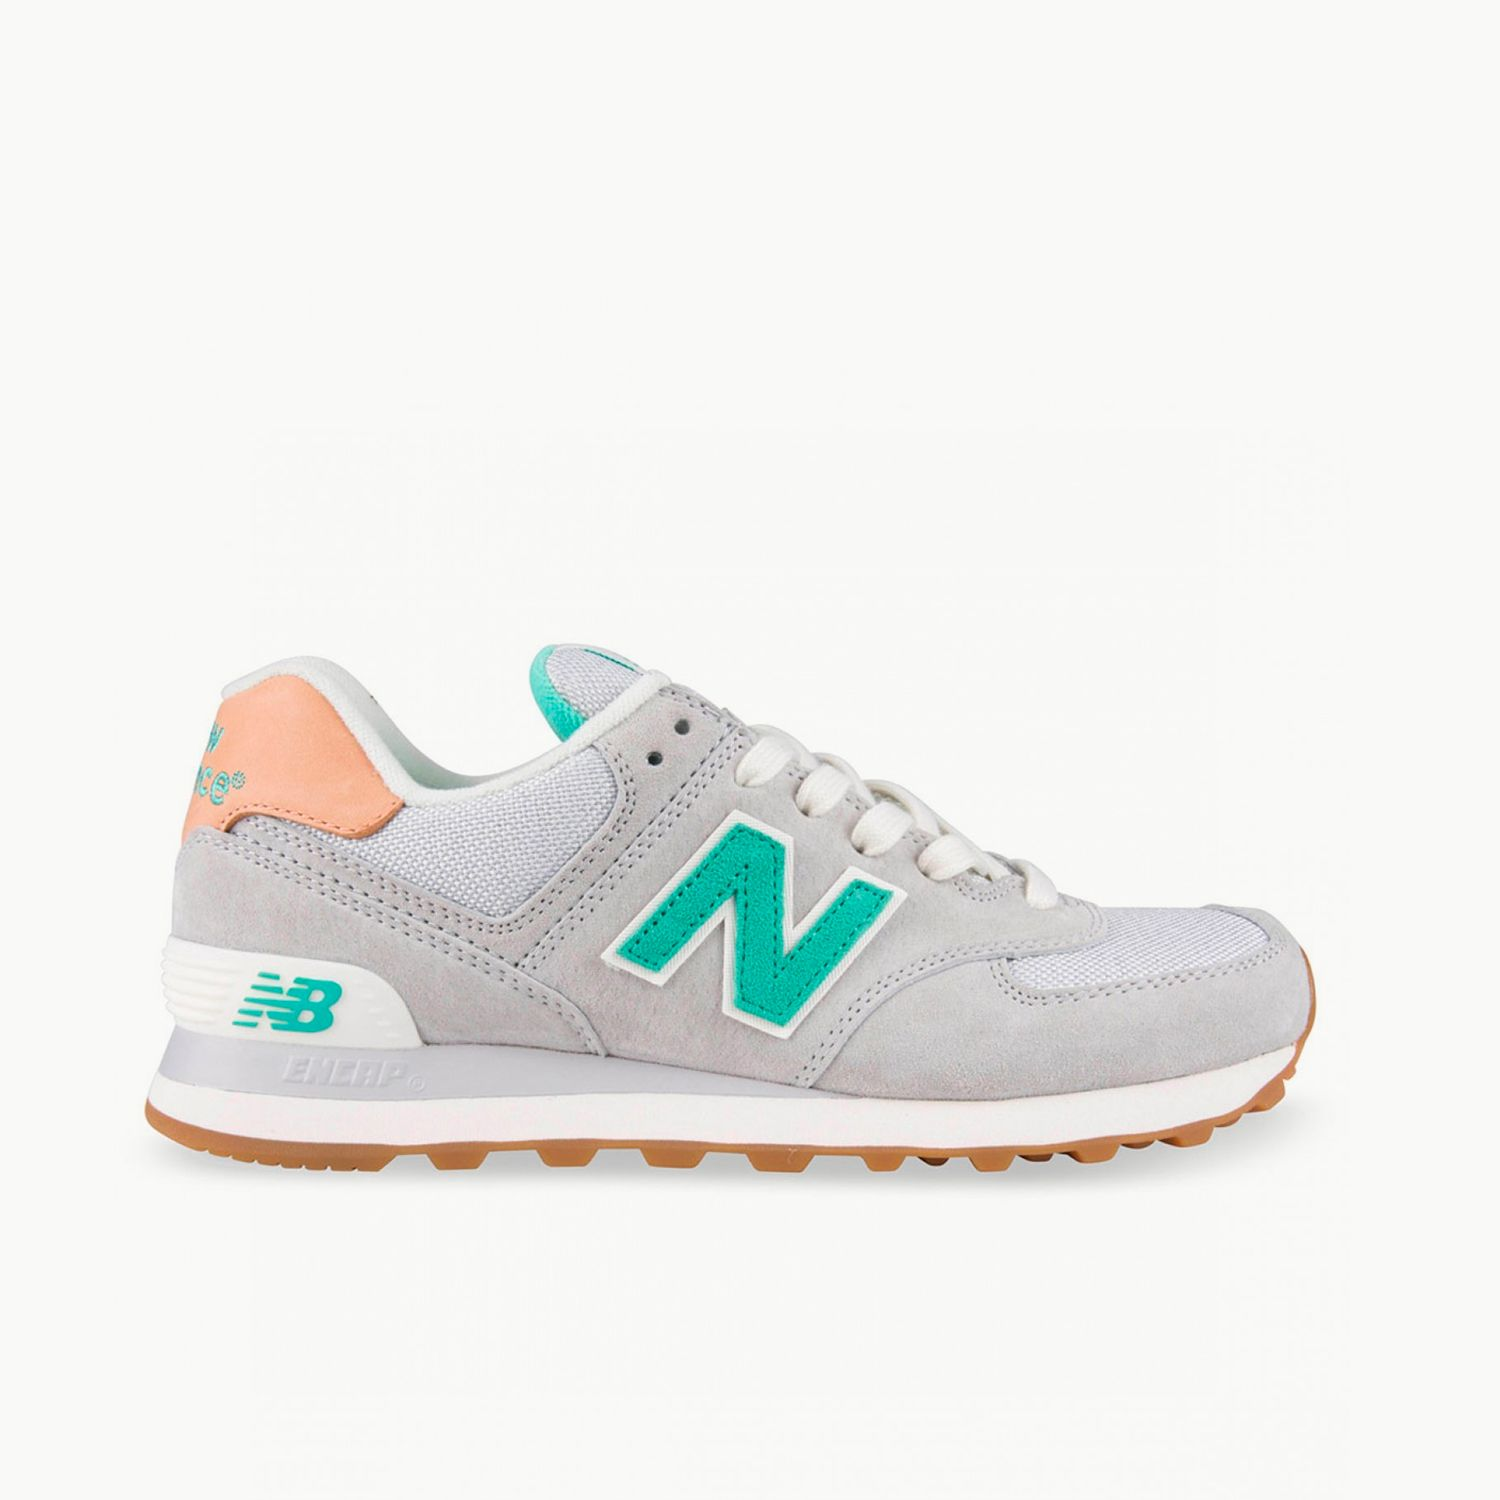 NEW BALANCE 999 (WOMENS): Navy/White We | Available at HYPE DC | New Balance.  | Pinterest | Navy, Casual shoes online and Australia